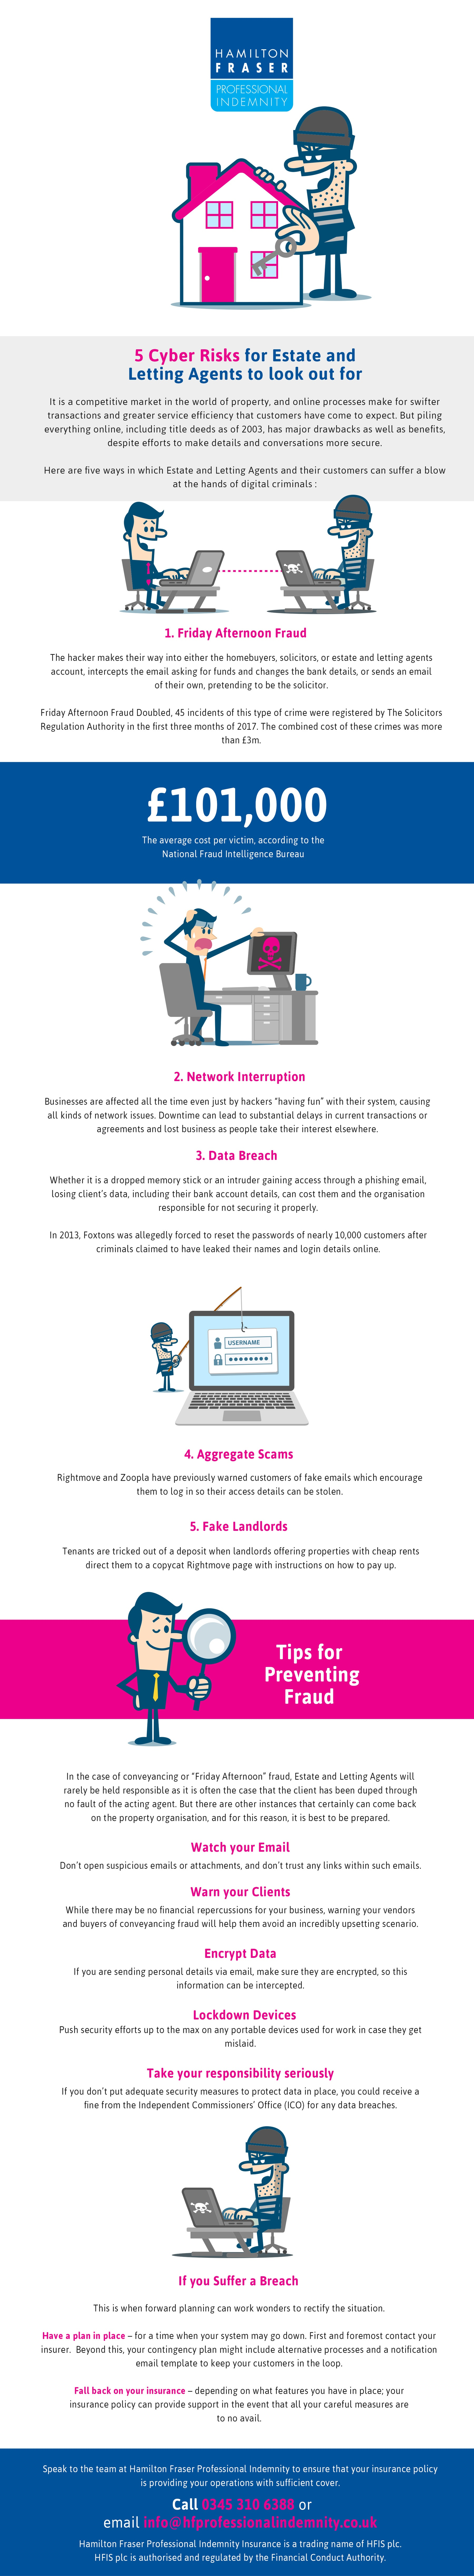 Infographic - 5 cyber risks for Estate and Letting Agents to look out for